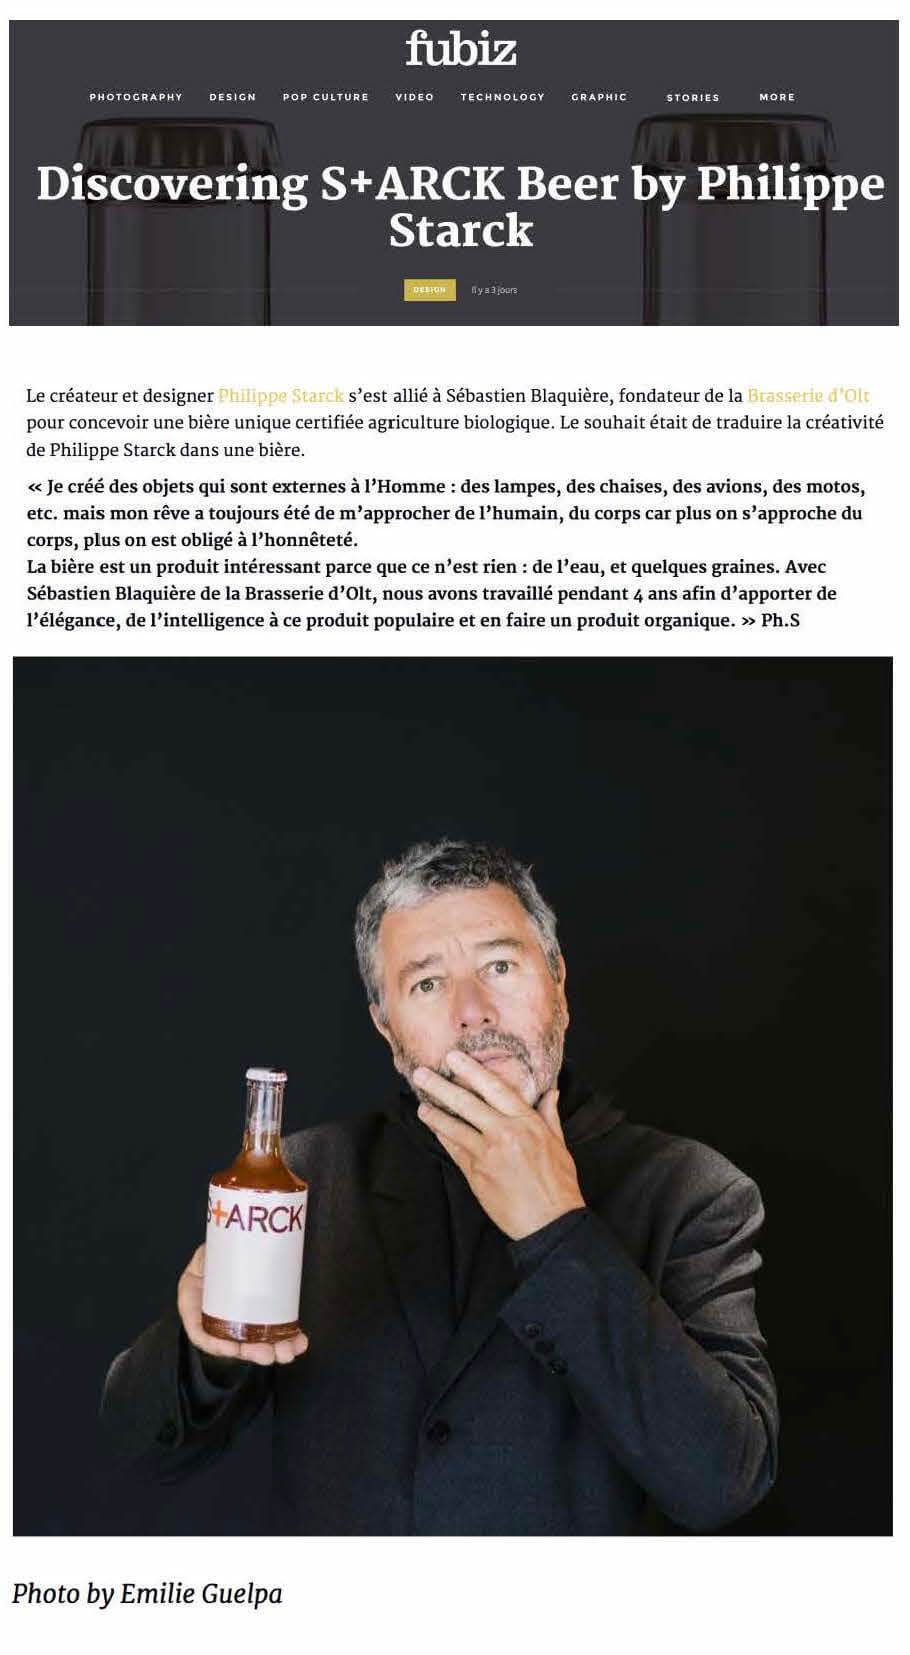 Discovering S+ARCK Beer by Philippe Starck